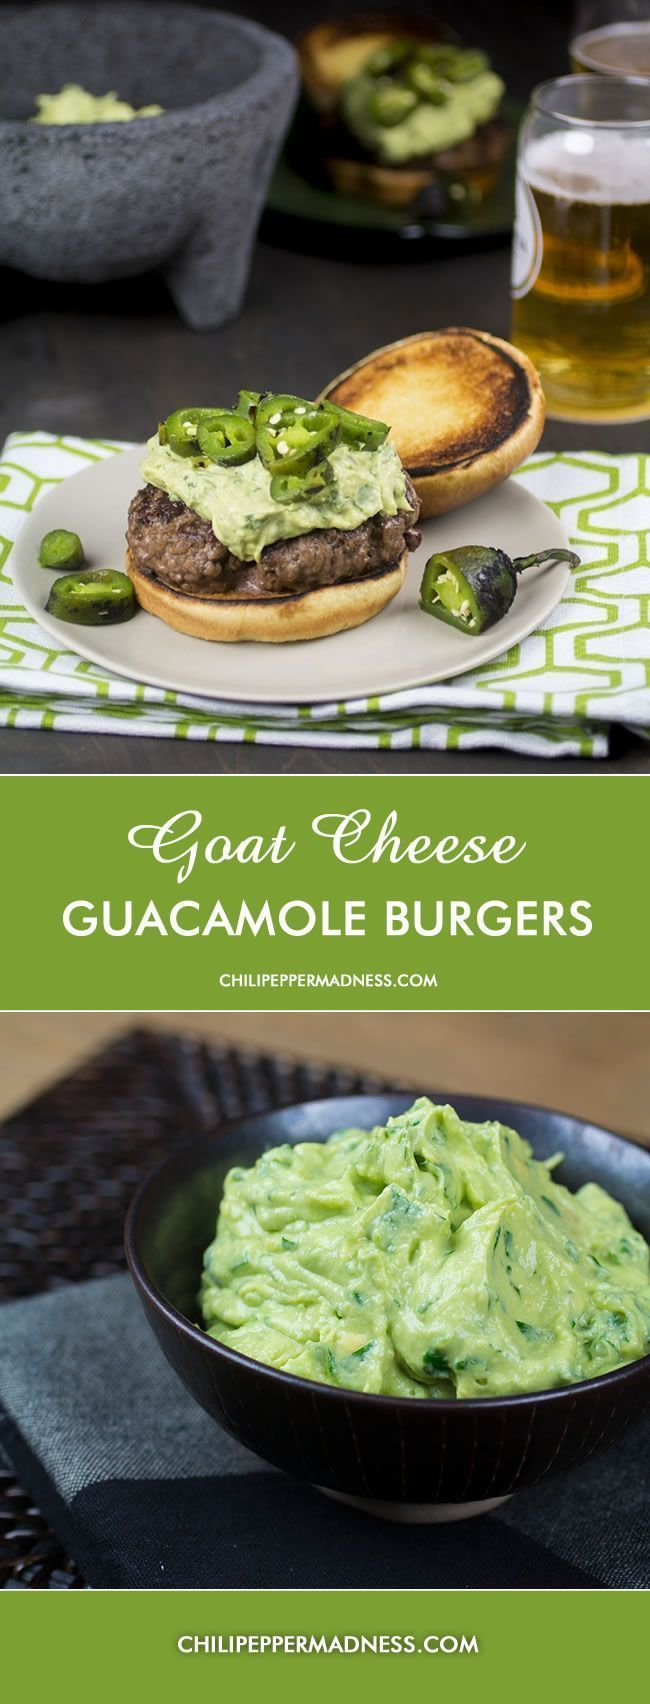 25+ best ideas about Guacamole burger on Pinterest